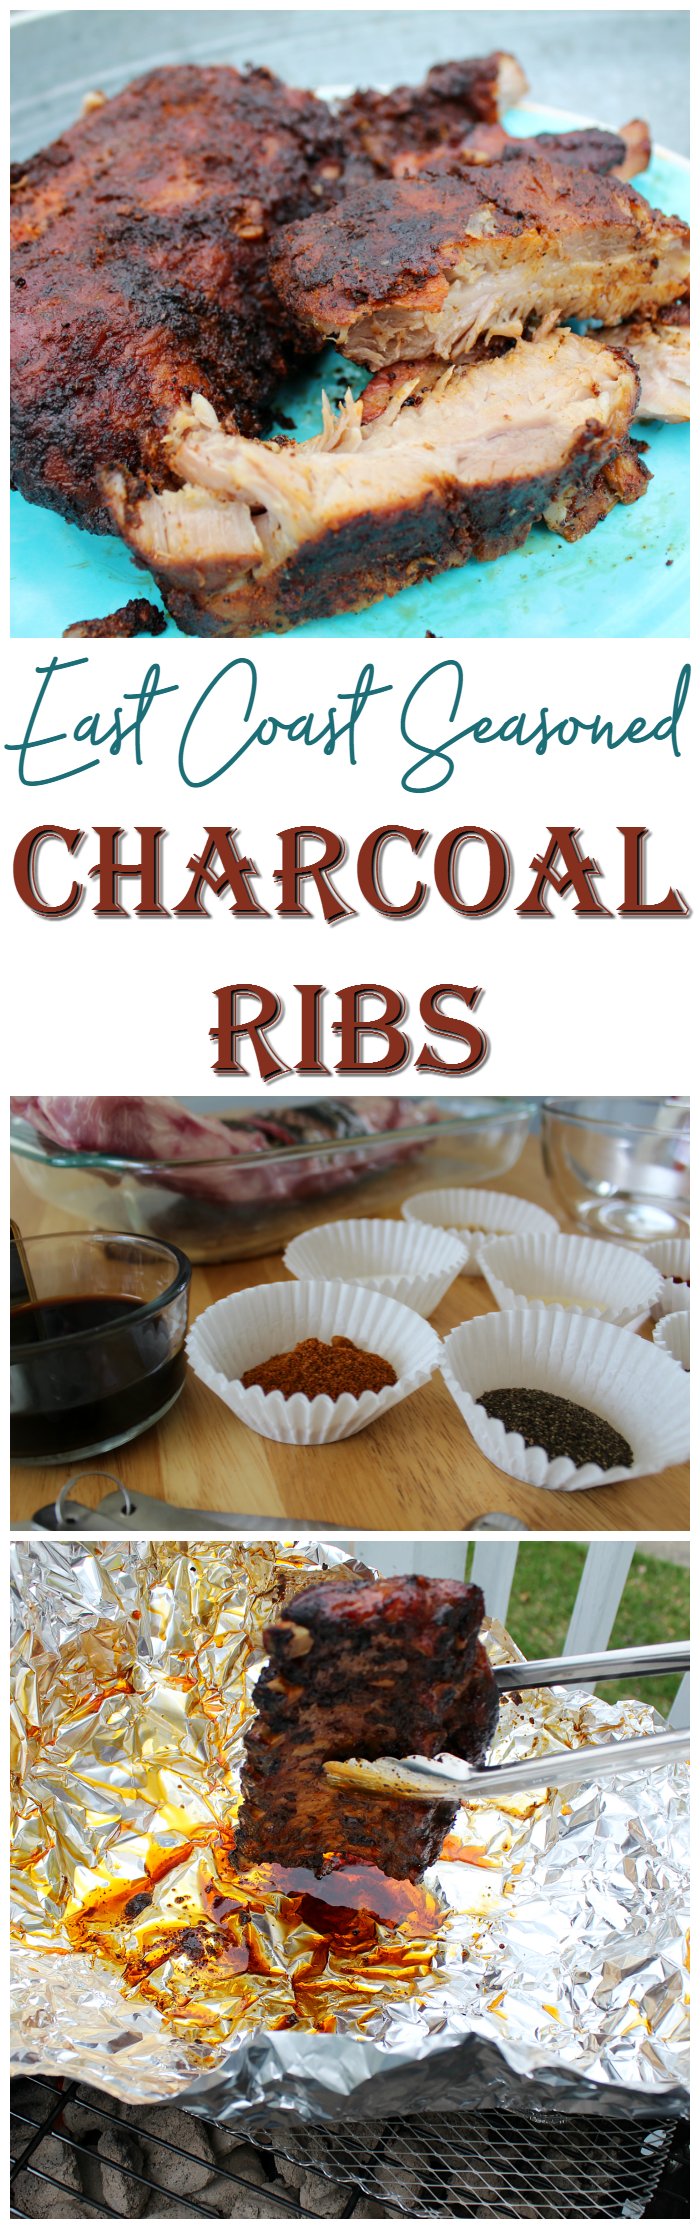 These East Coast Seasoned Charcoal Ribs are so tasty and tender! This blogger shows how easy it is to make ribs on a charcoal grill!